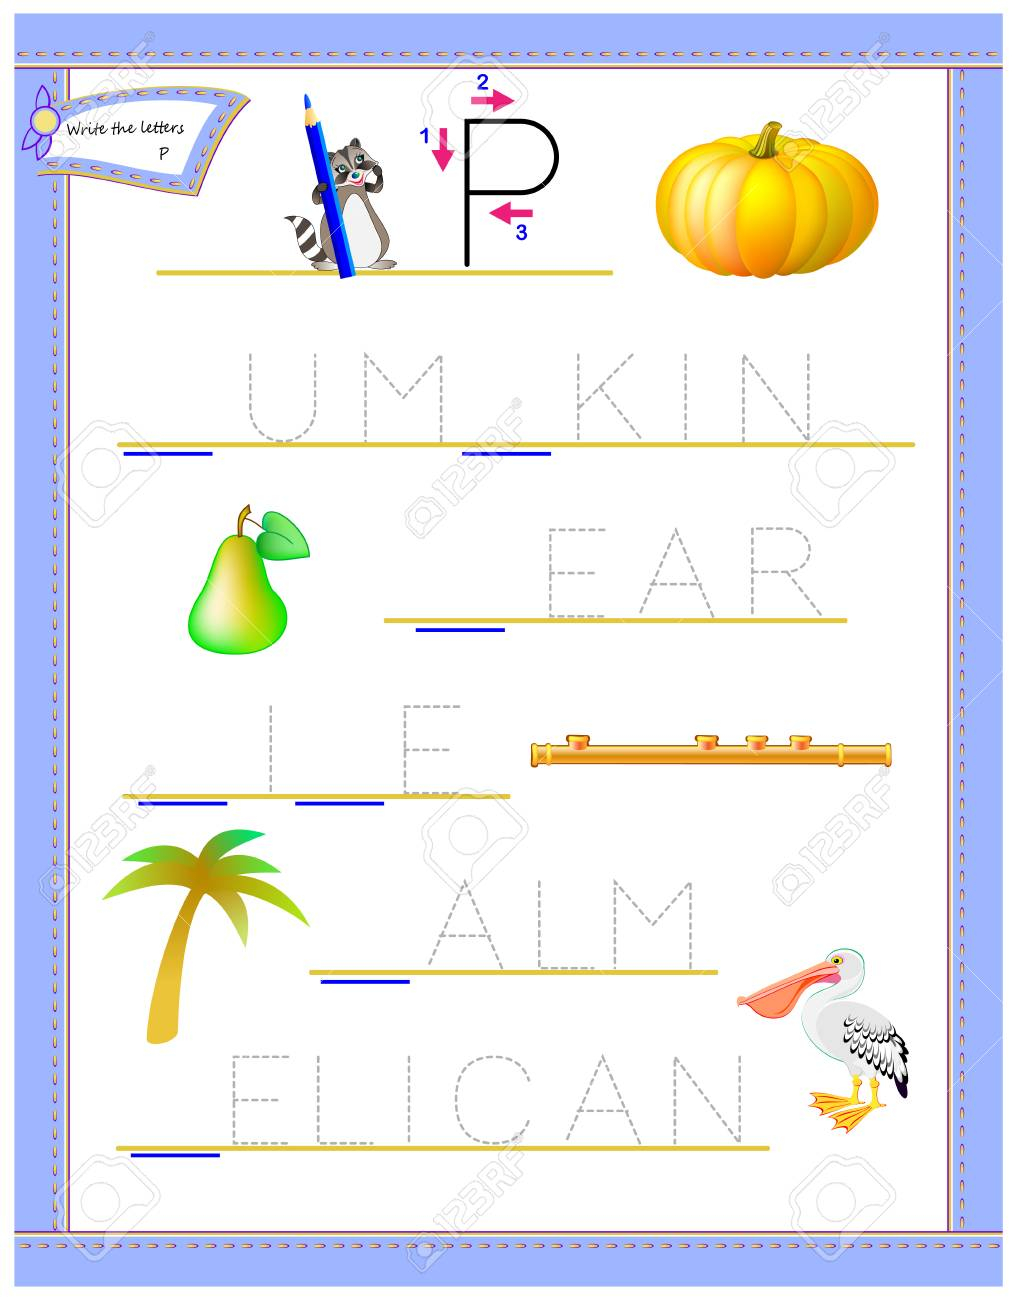 Tracing Letter P For Study English Alphabet. Printable Worksheet..